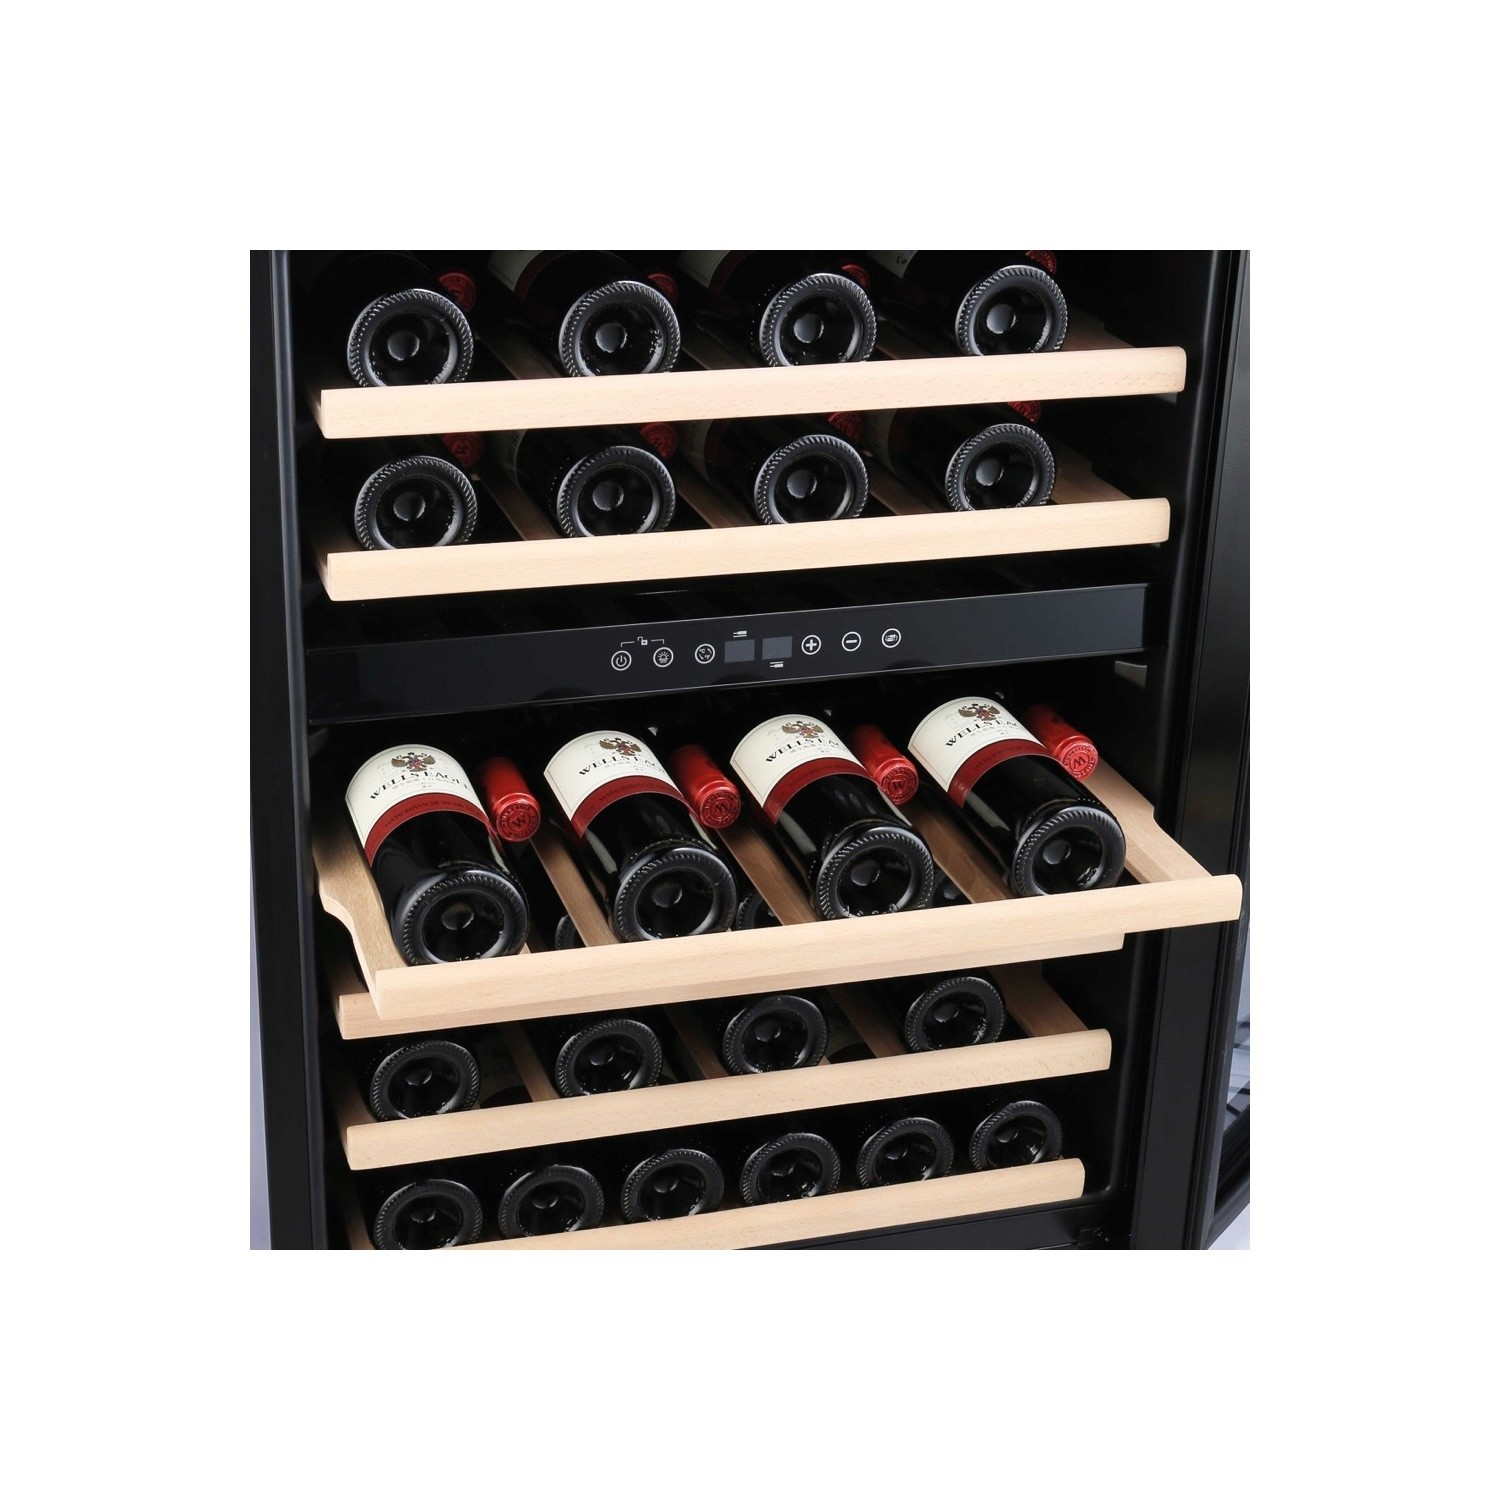 amica awc600ss 46 bottle freestanding under counter wine cooler dual zone 60cm wide 82cm tall stainless steel